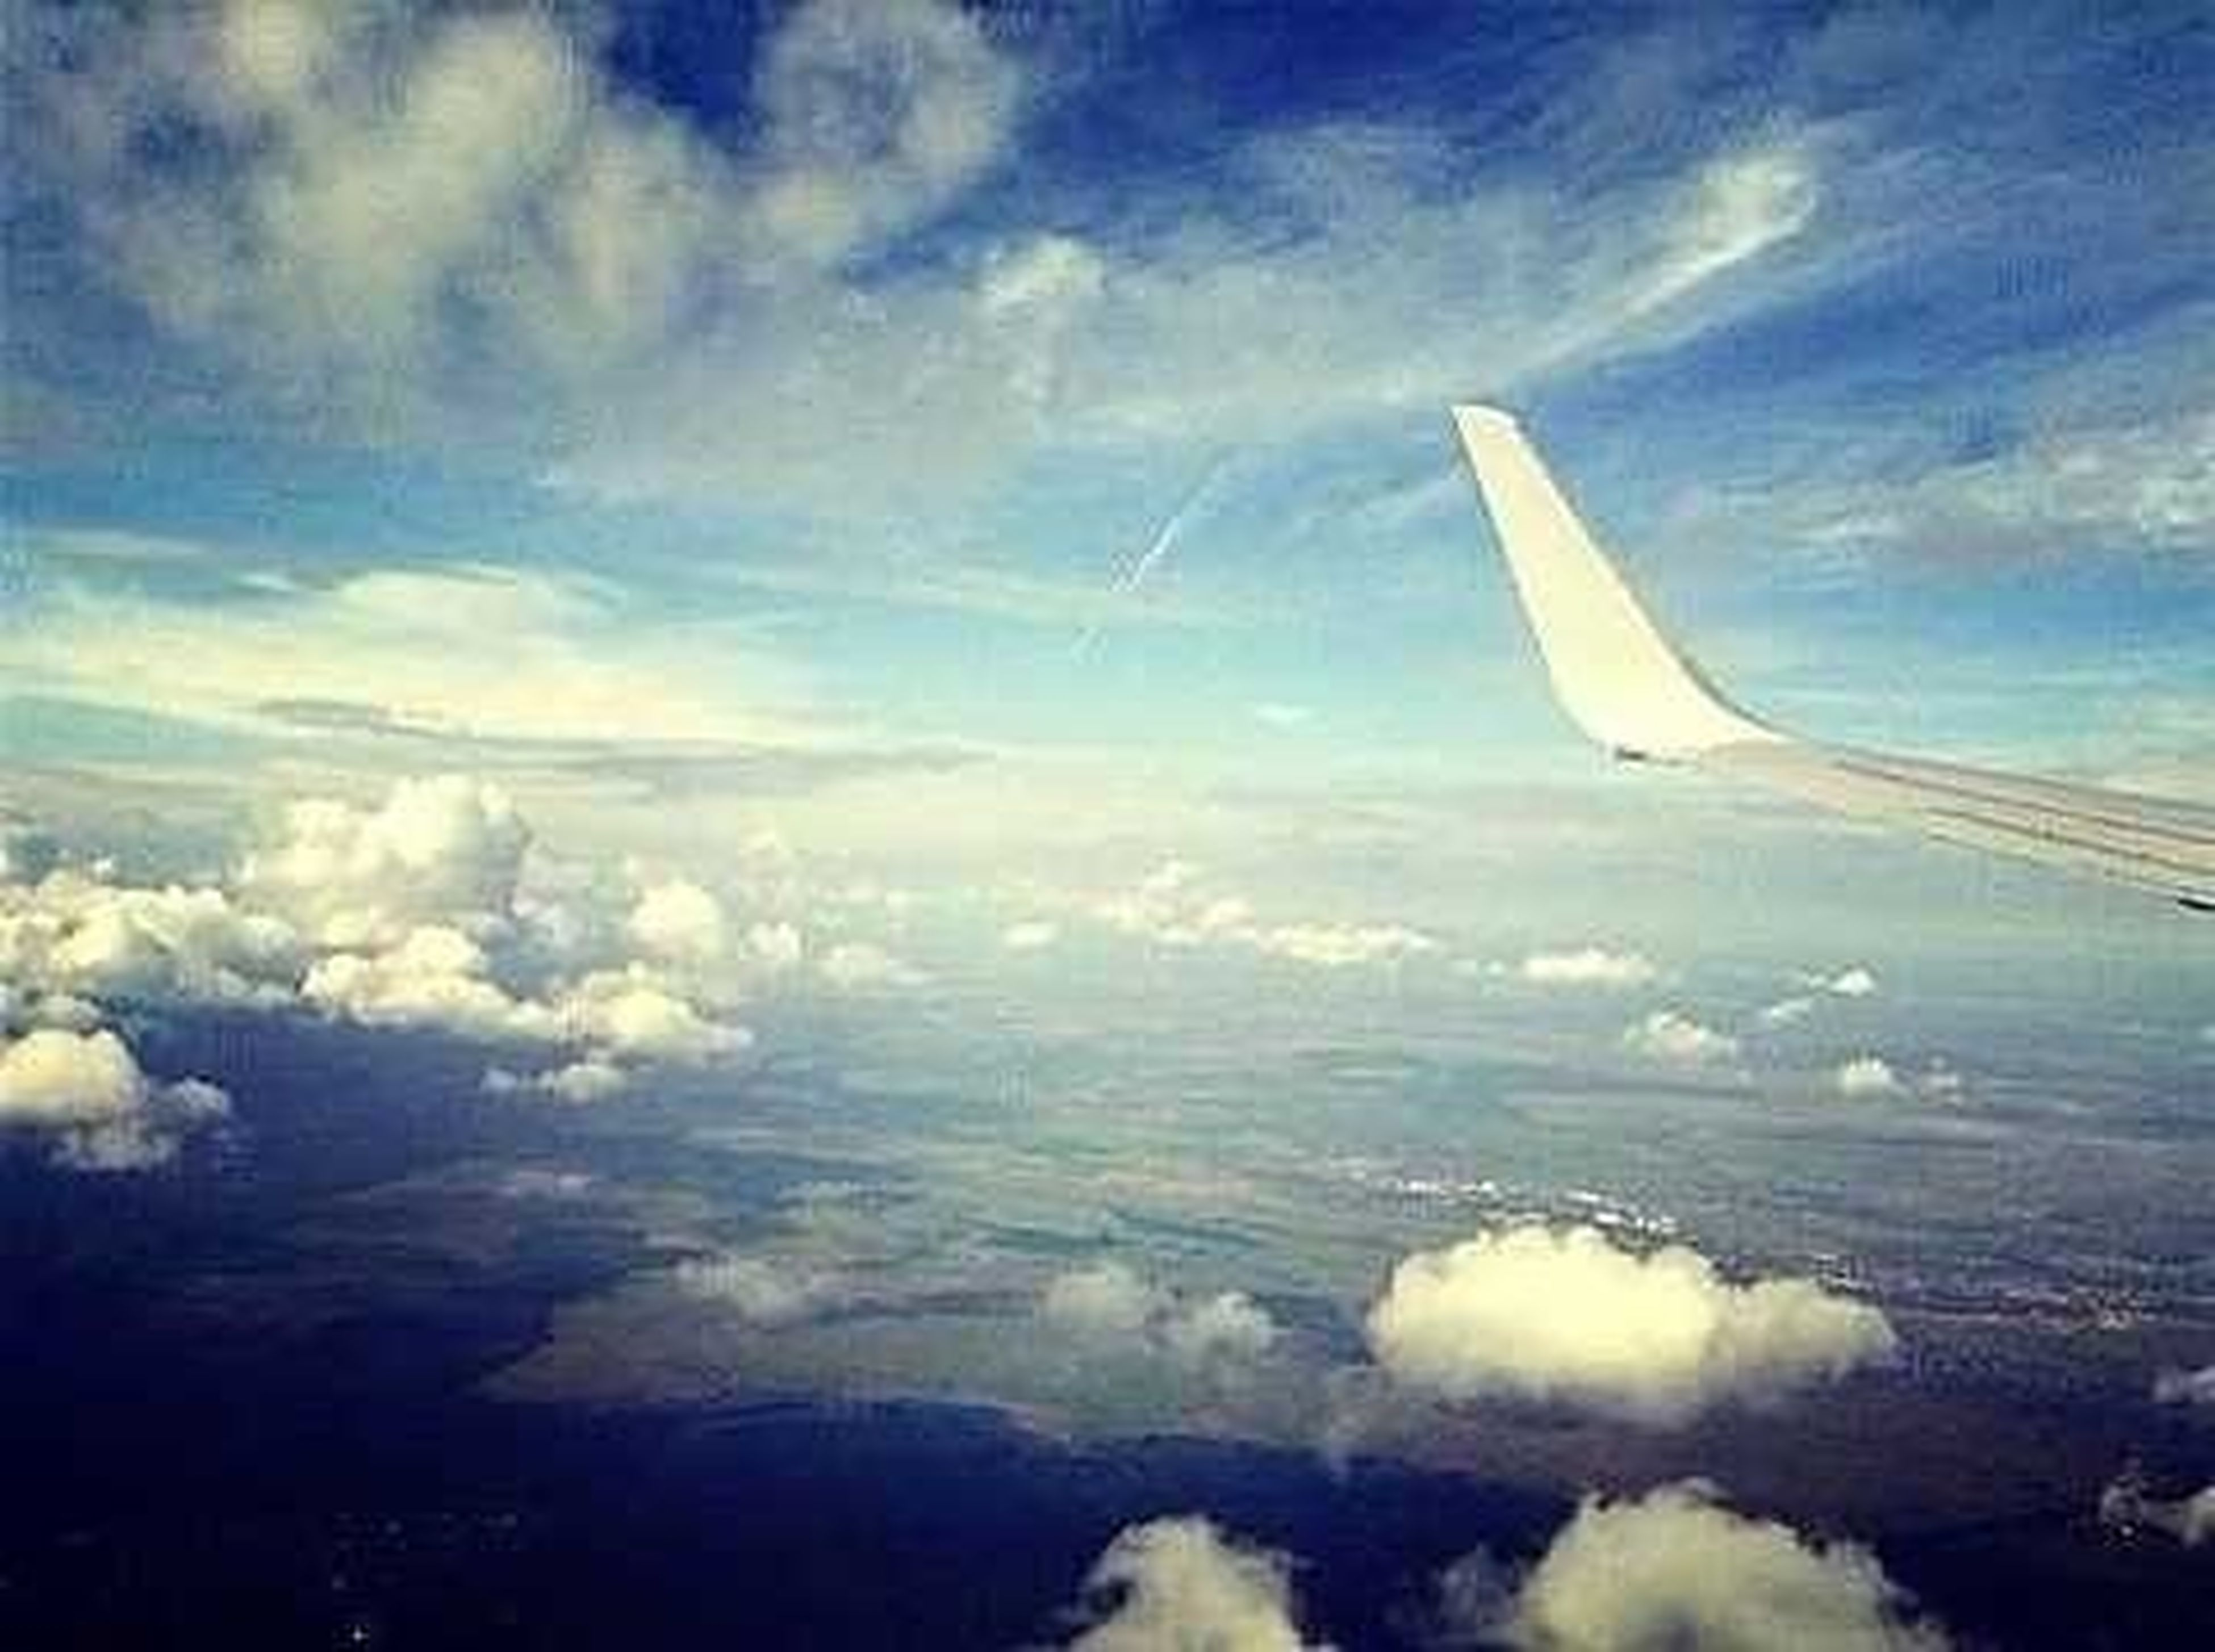 flying, airplane, aircraft wing, air vehicle, aerial view, sky, transportation, cloud - sky, beauty in nature, part of, scenics, cropped, mid-air, nature, travel, mode of transport, cloud, blue, tranquil scene, sea